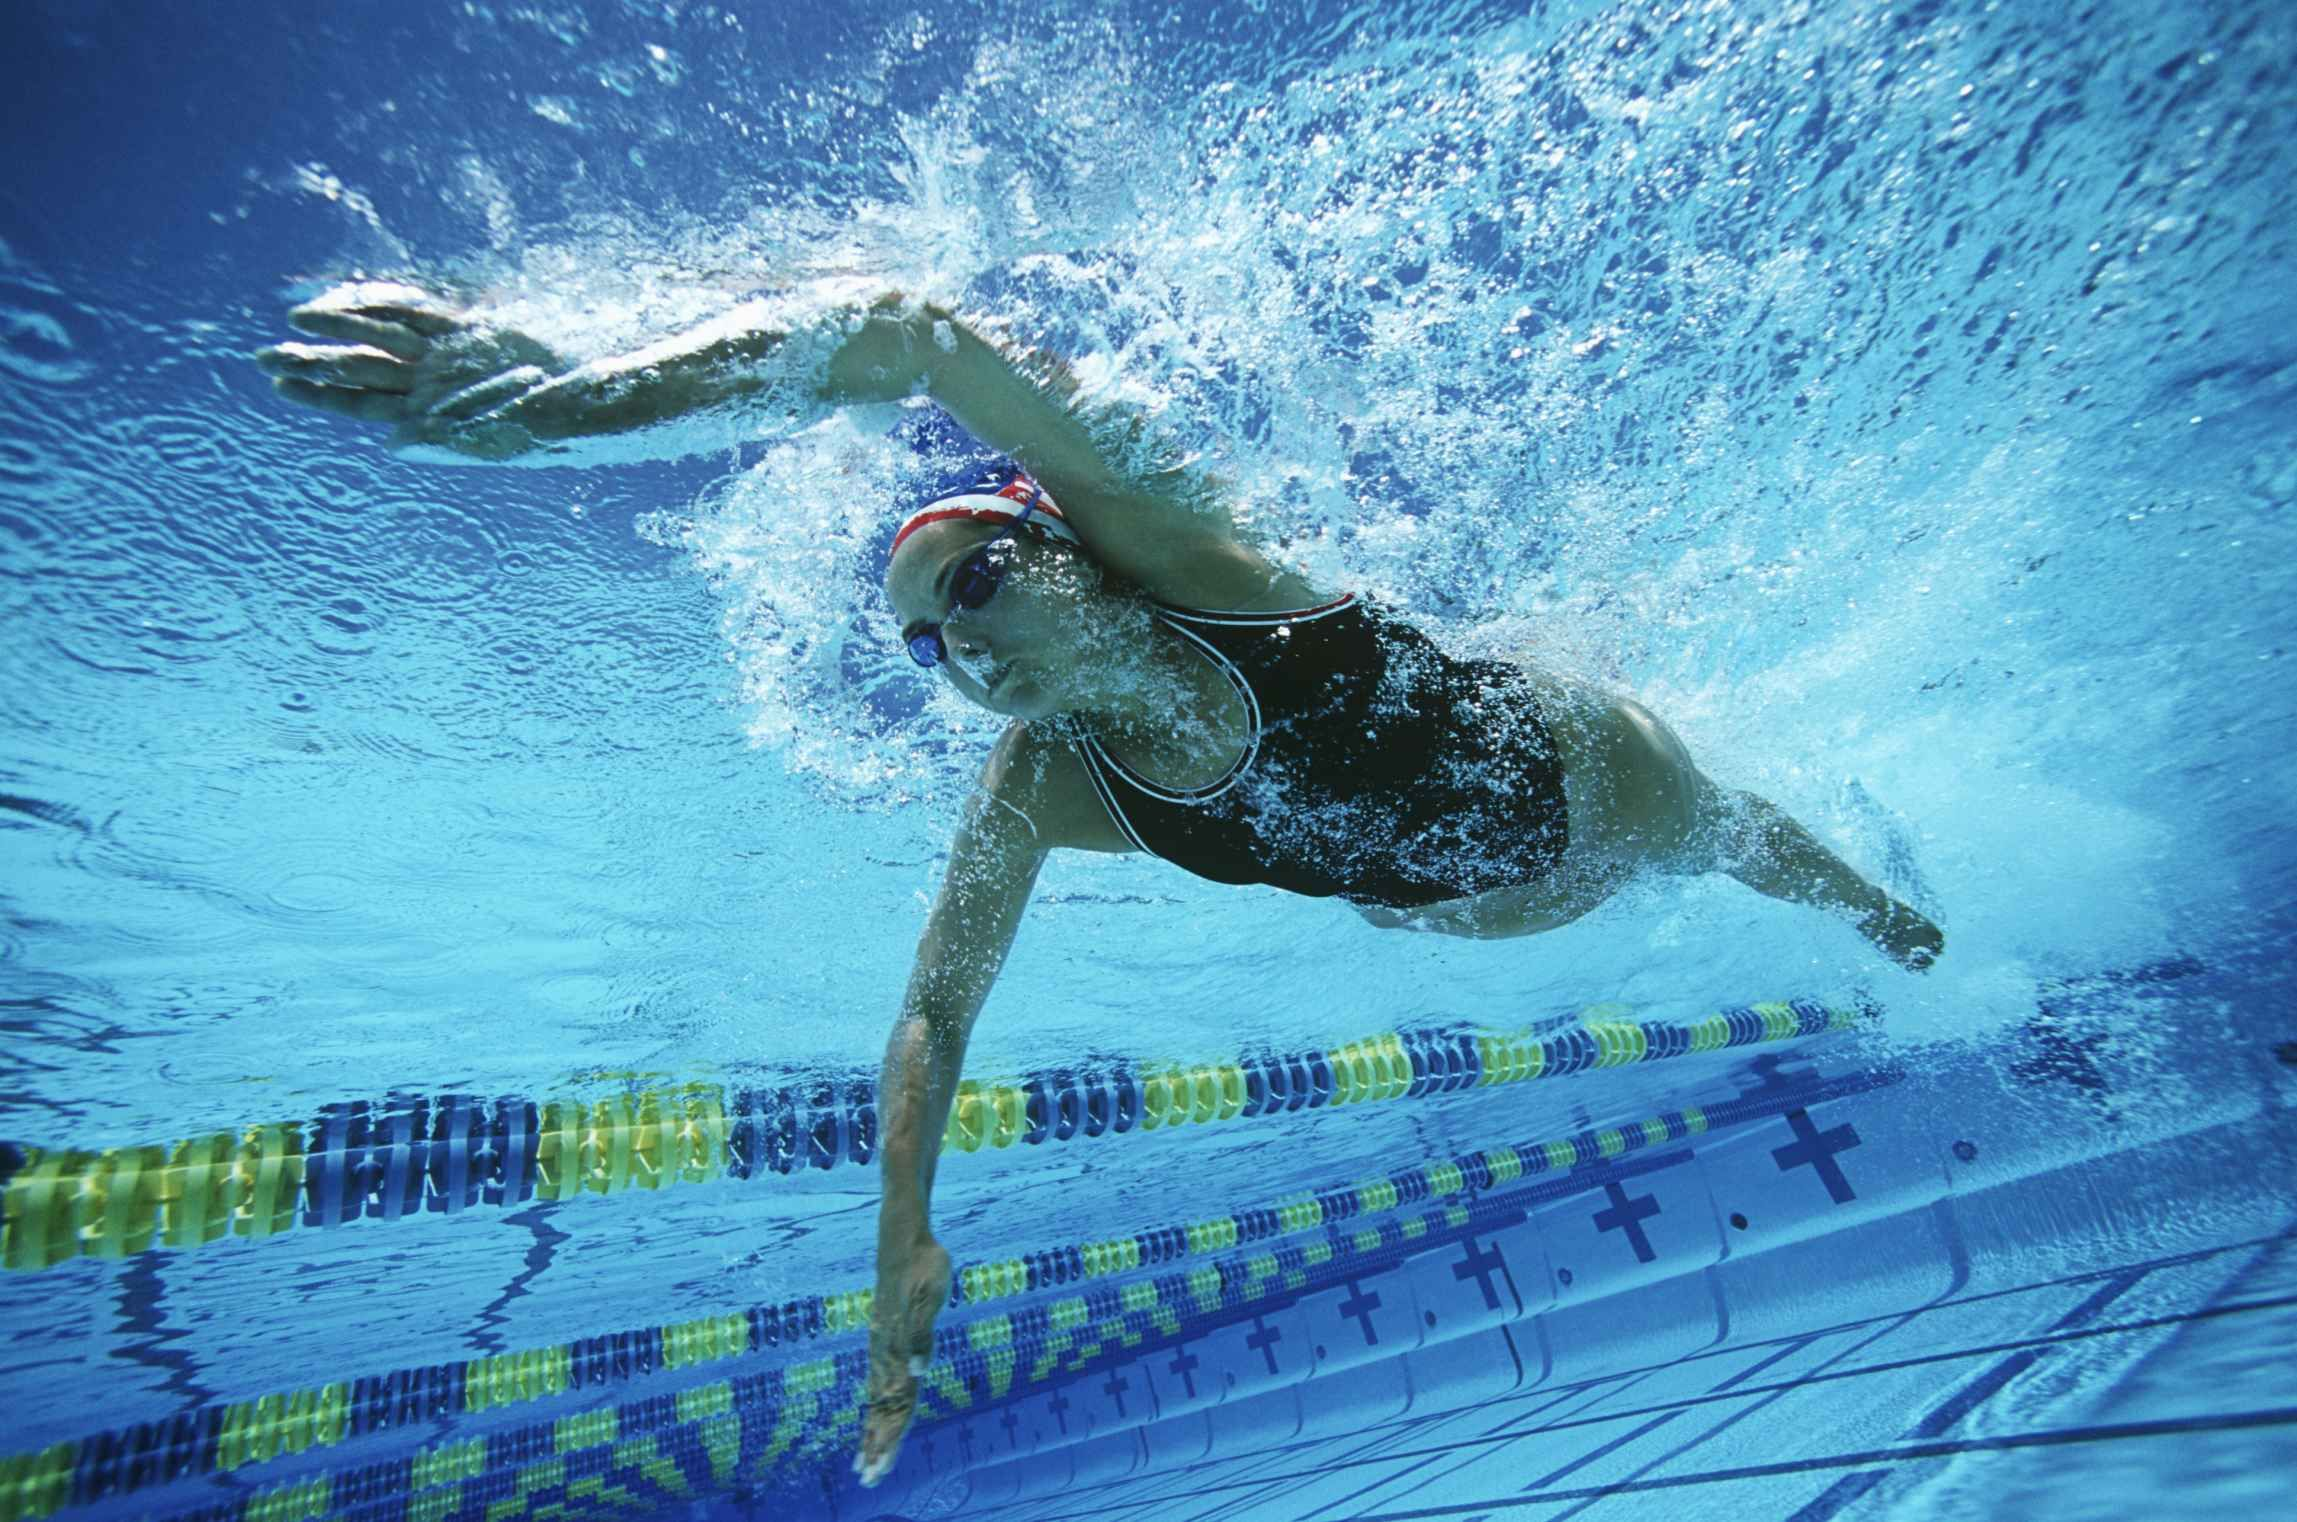 Weight Management Weight Loss Calories Weight Loss Columbia University Estimates That You Need To Burn 3 500 Calories For Every 1 Po Weight Loss Swim